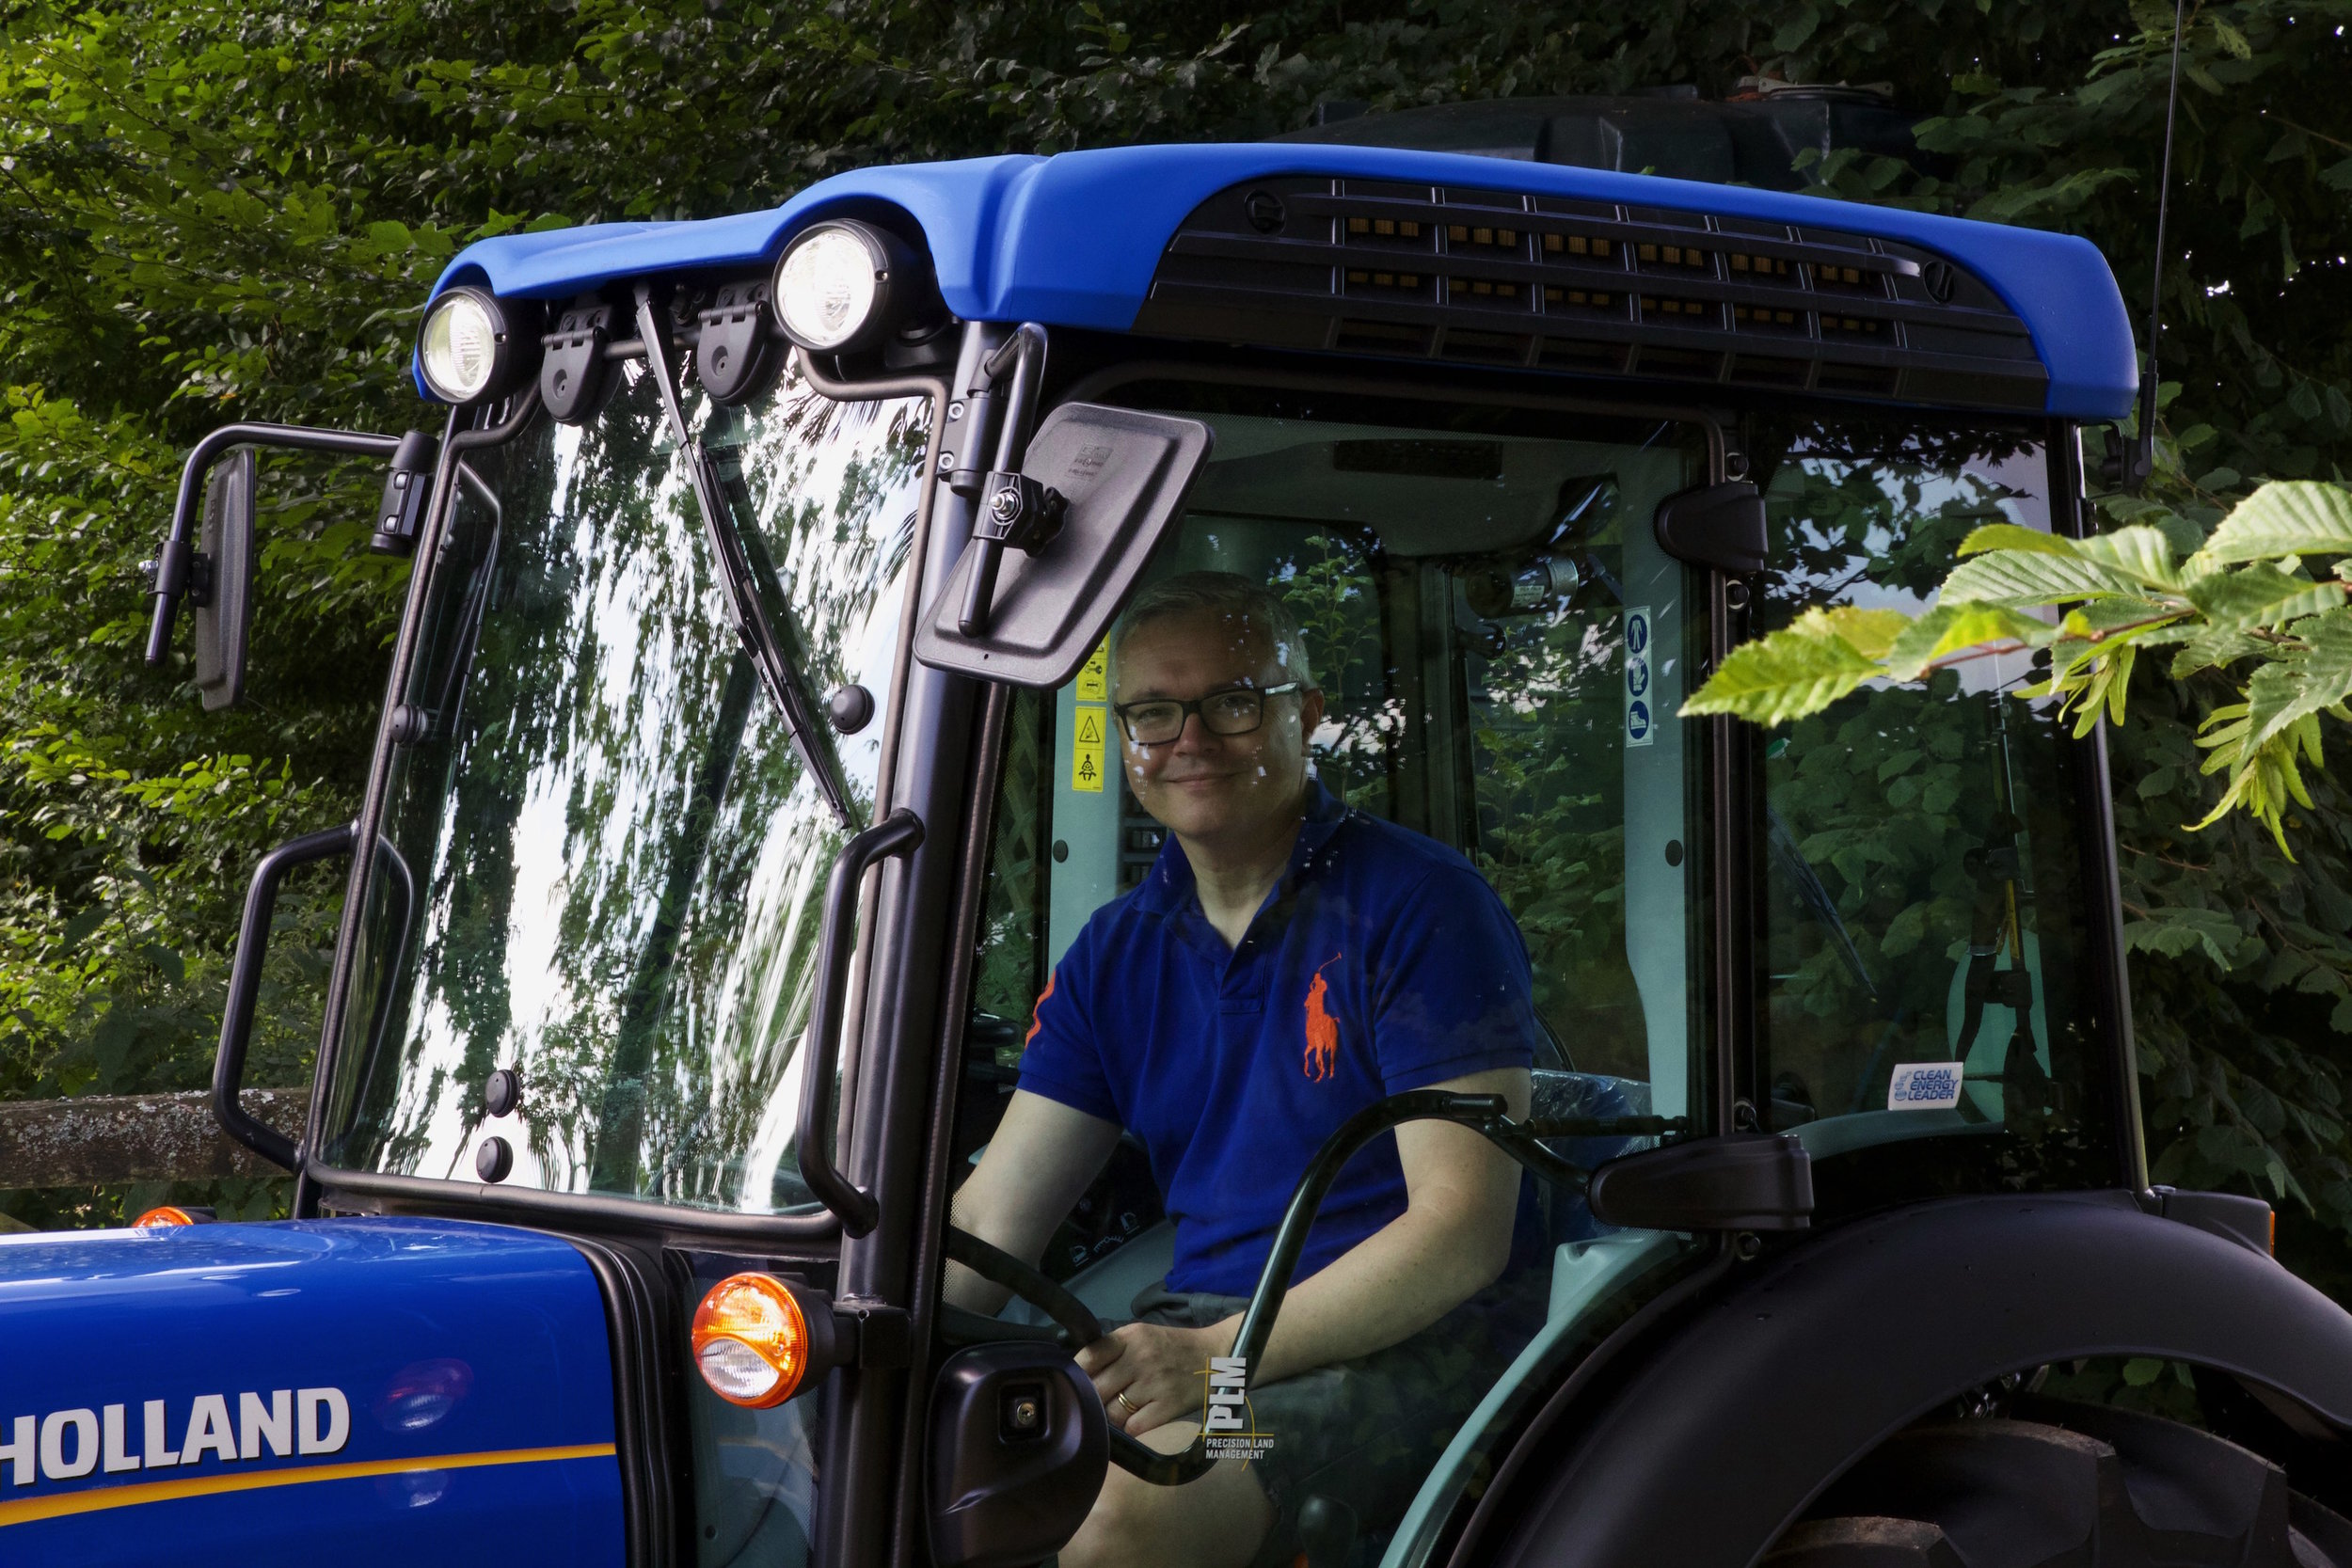 David in the tractor